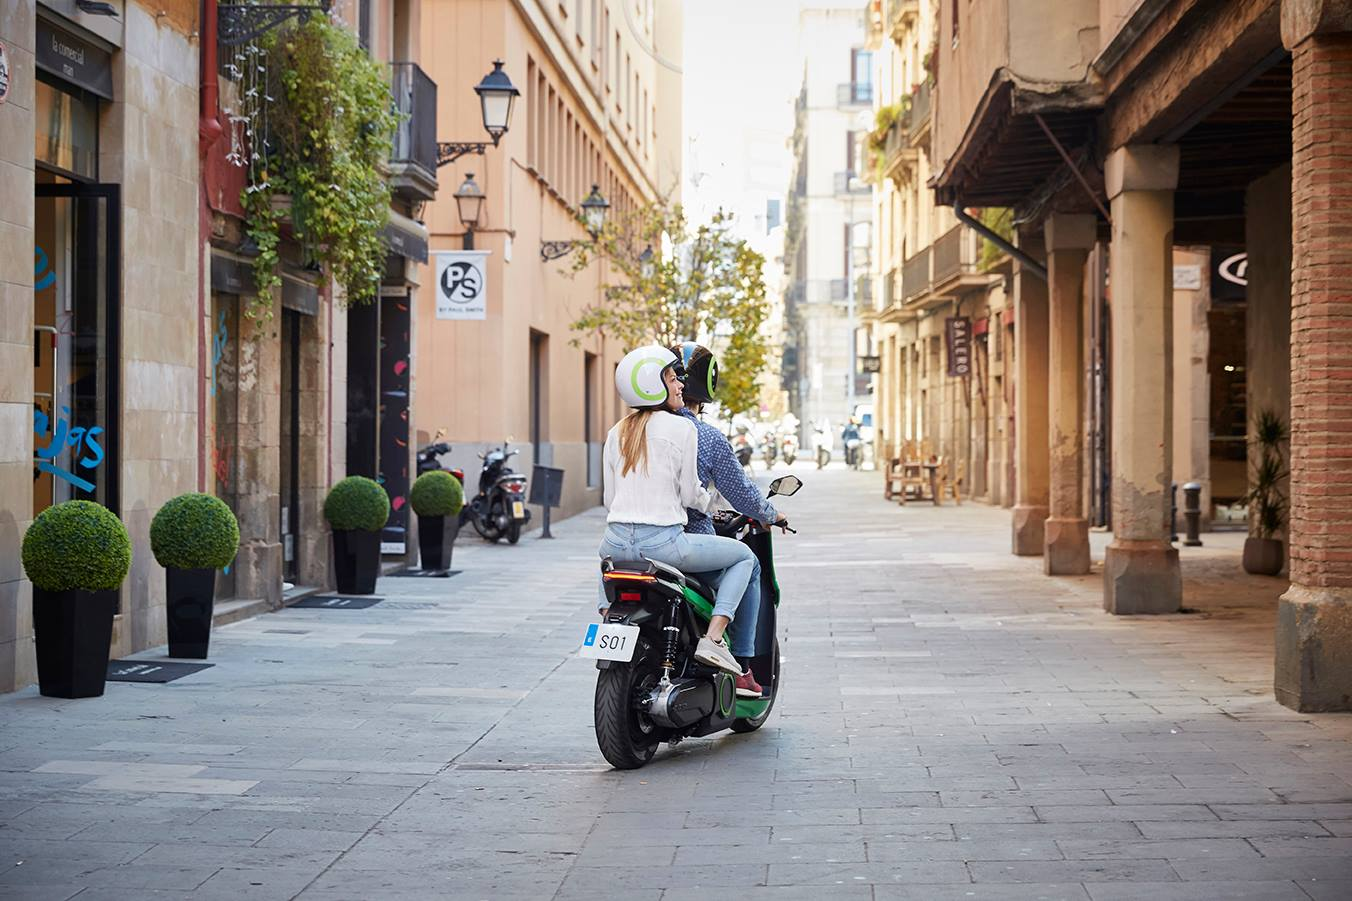 Spanish riders get first bite at S01 electric scooter